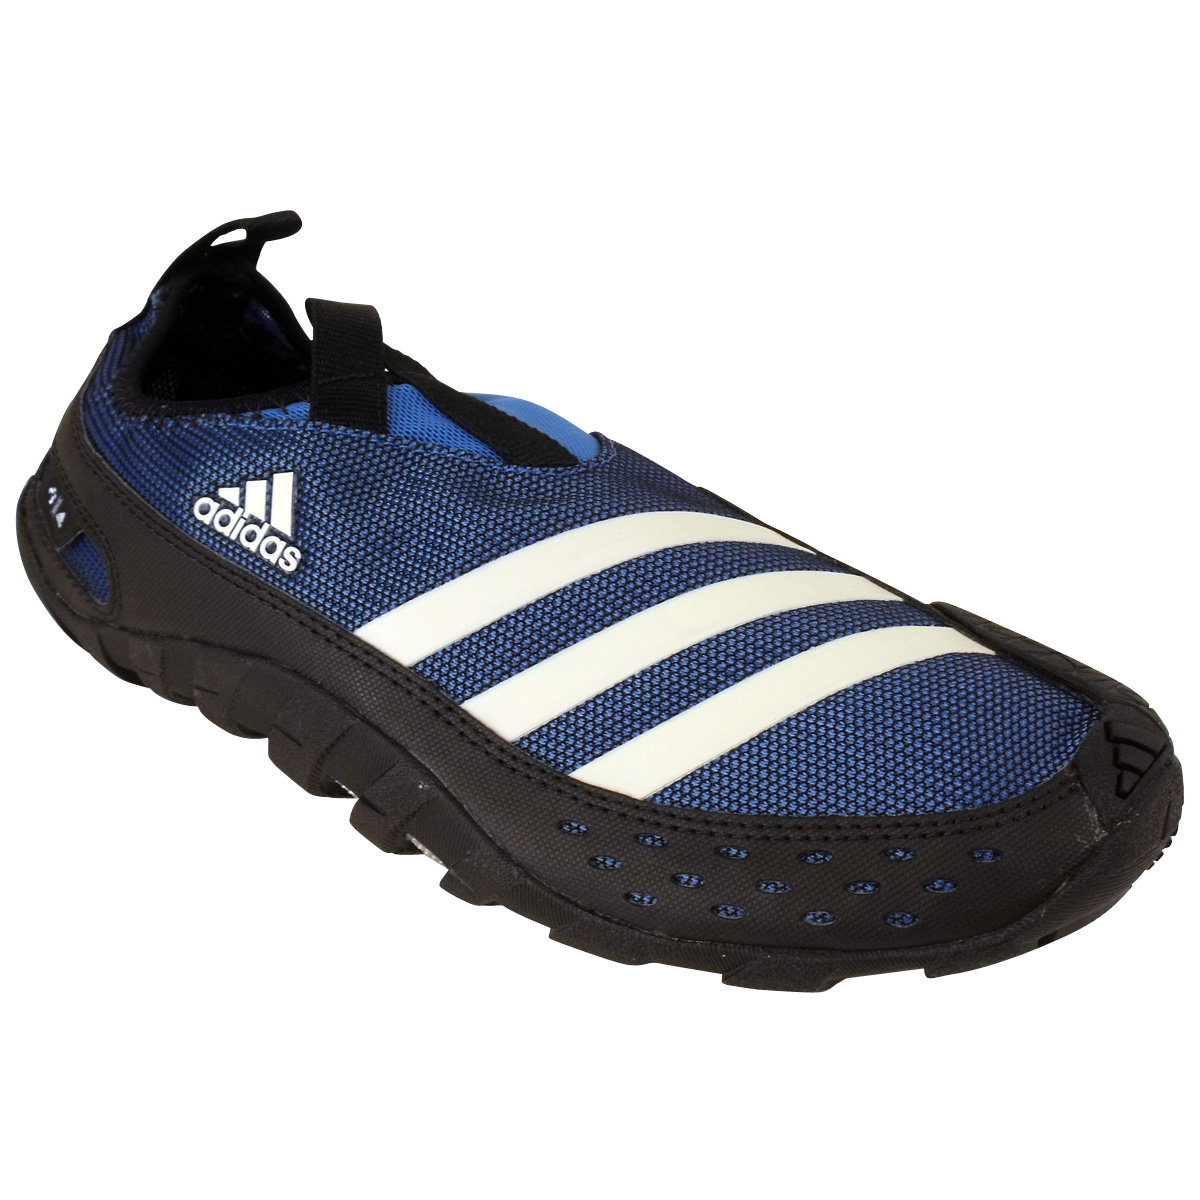 Mens-Adidas-Jawpaw-II-2-Slip-On-Boat-Water-Pumps-Shoes-Outdoor-Trainers-Shoe